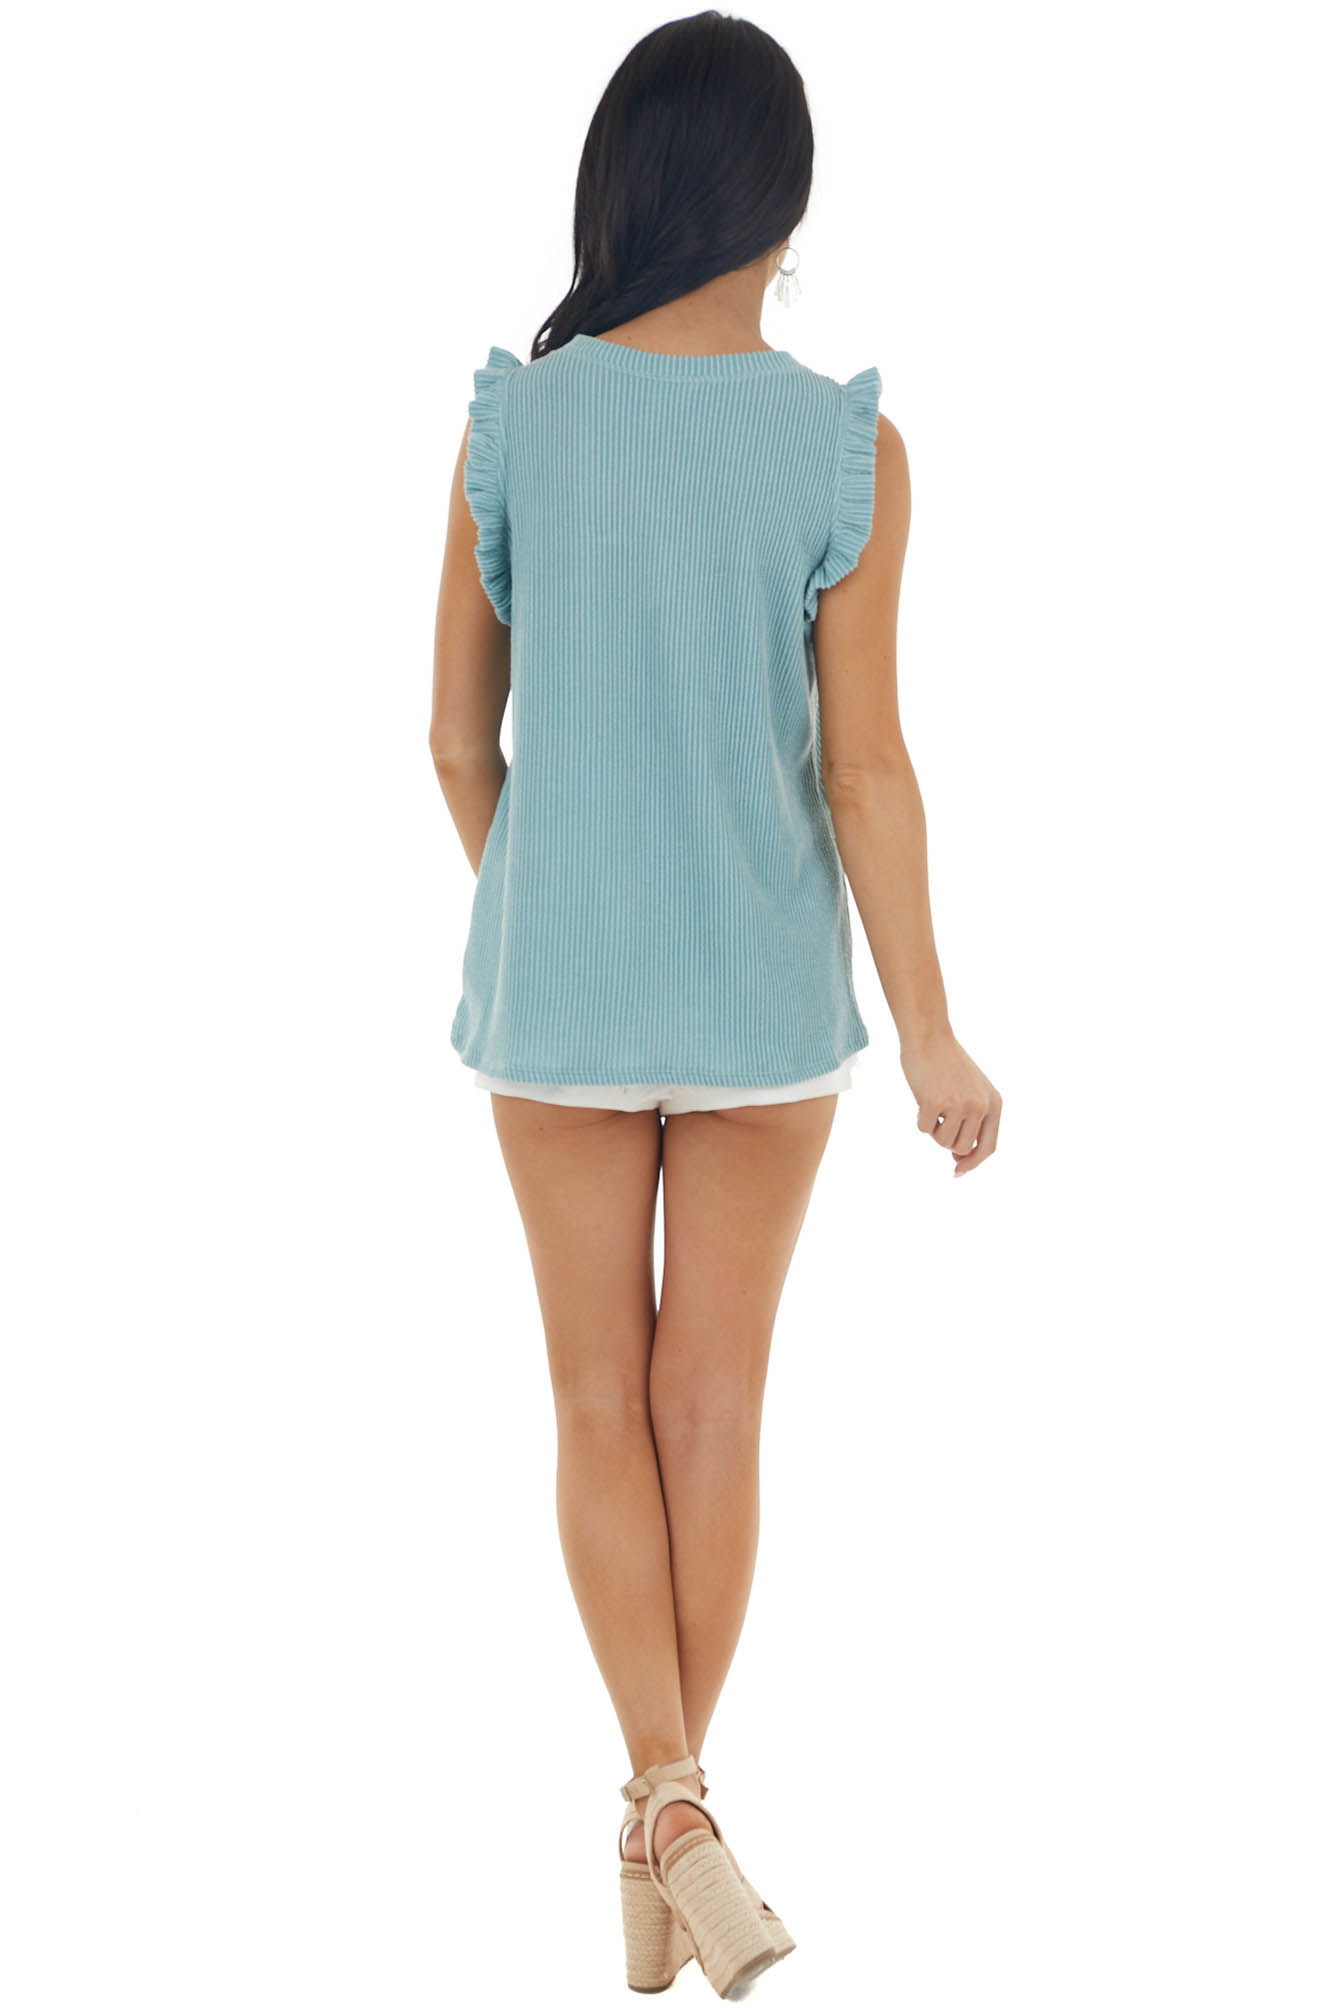 Vintage Teal Sleeveless Ribbed Knit Top with Ruffles